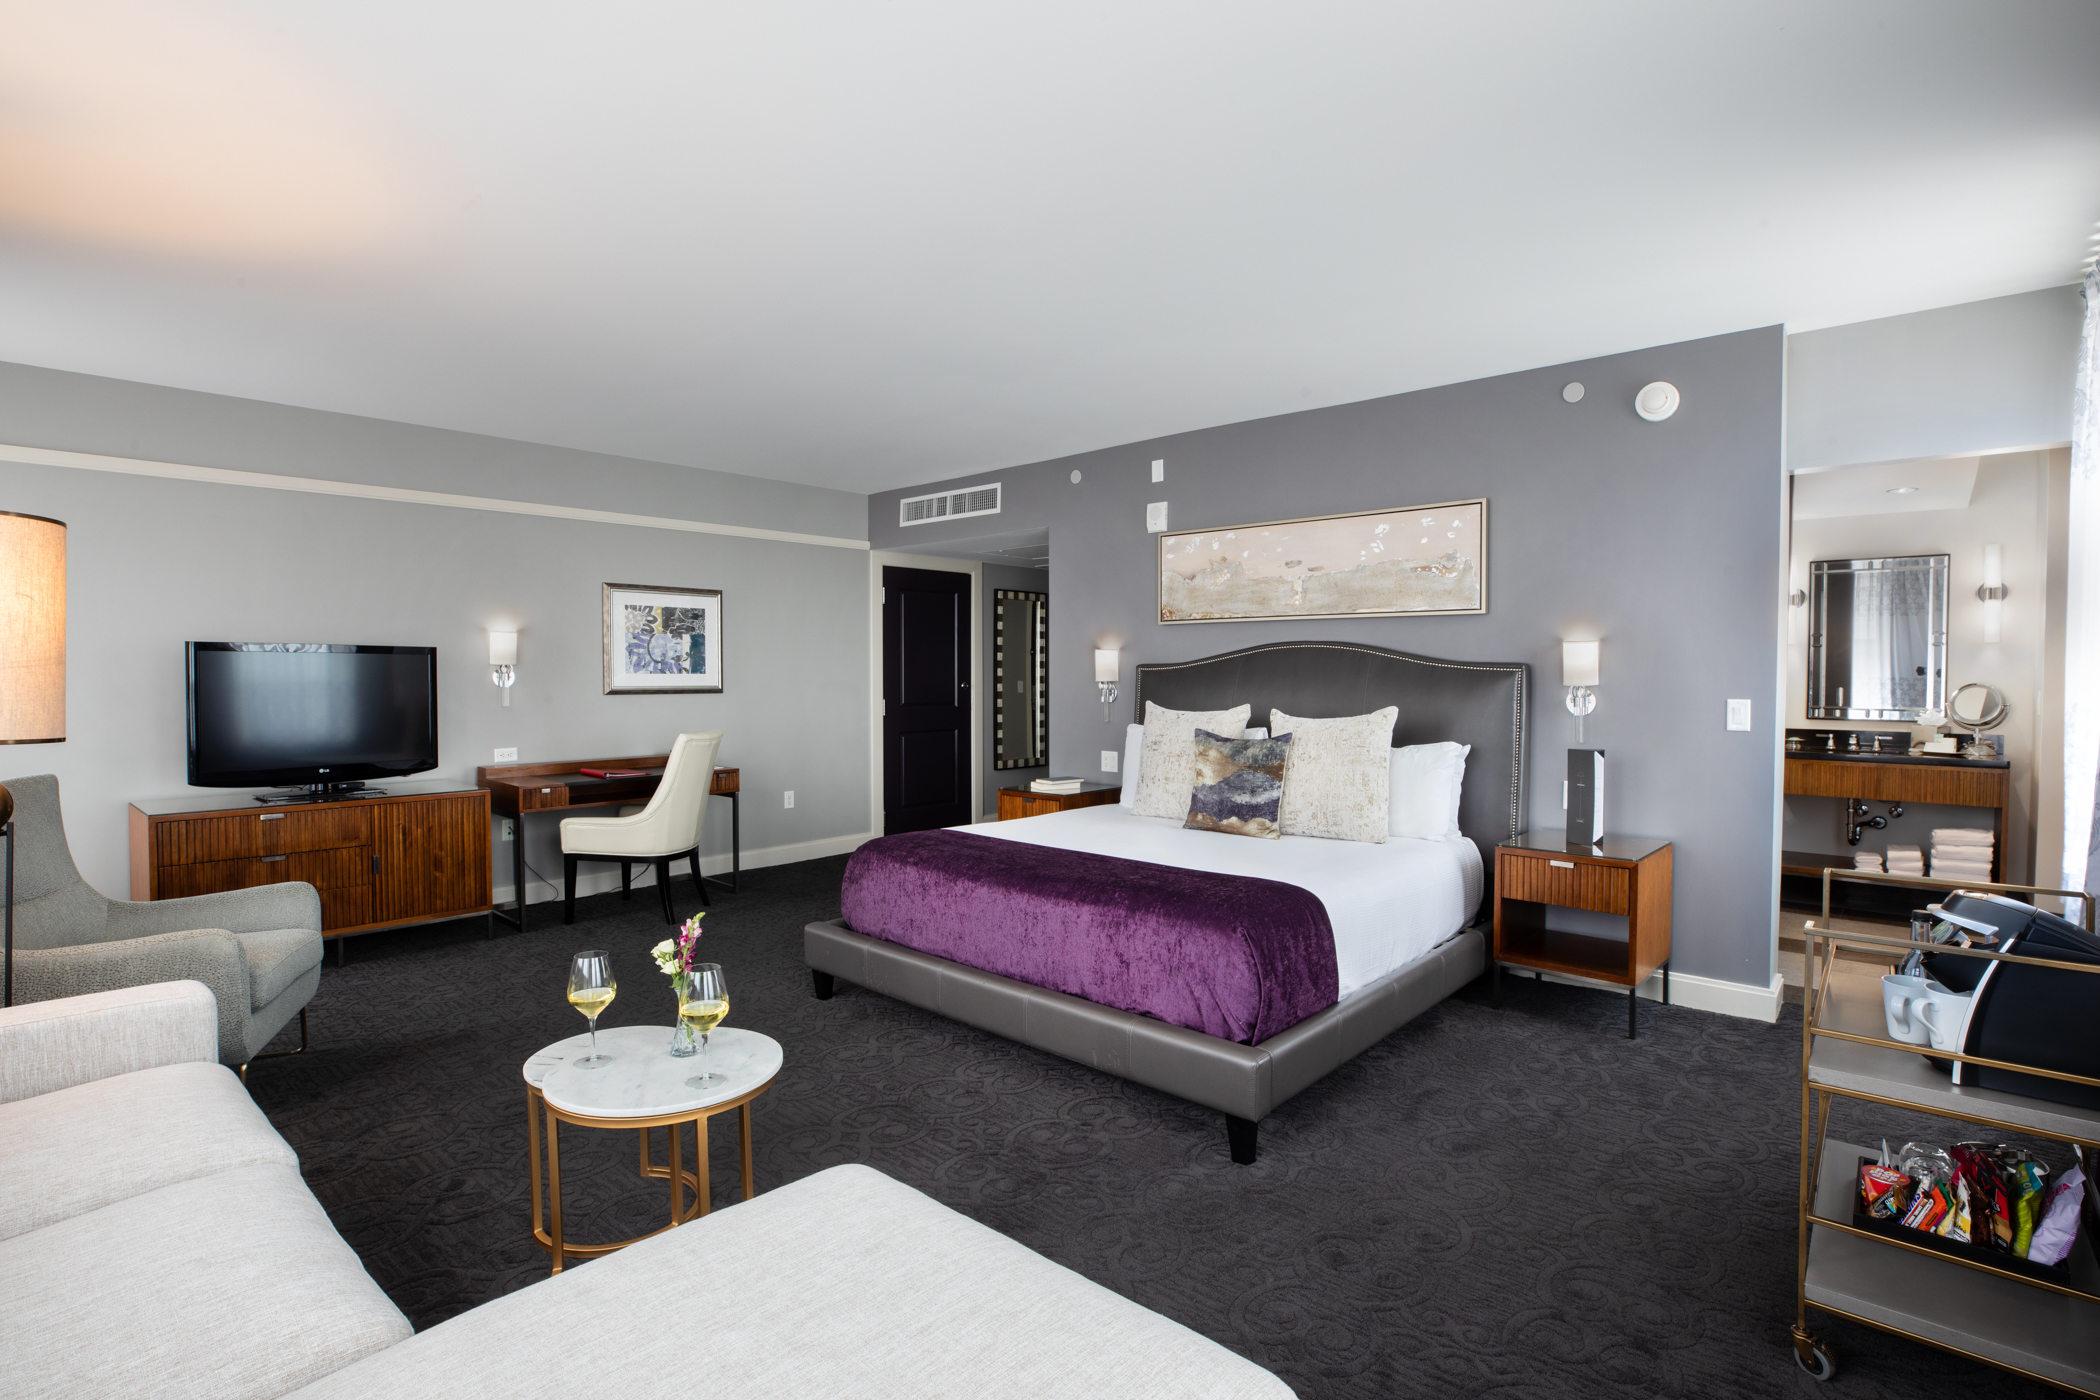 hotel room with grey walls and couches and a large bed with purple linens